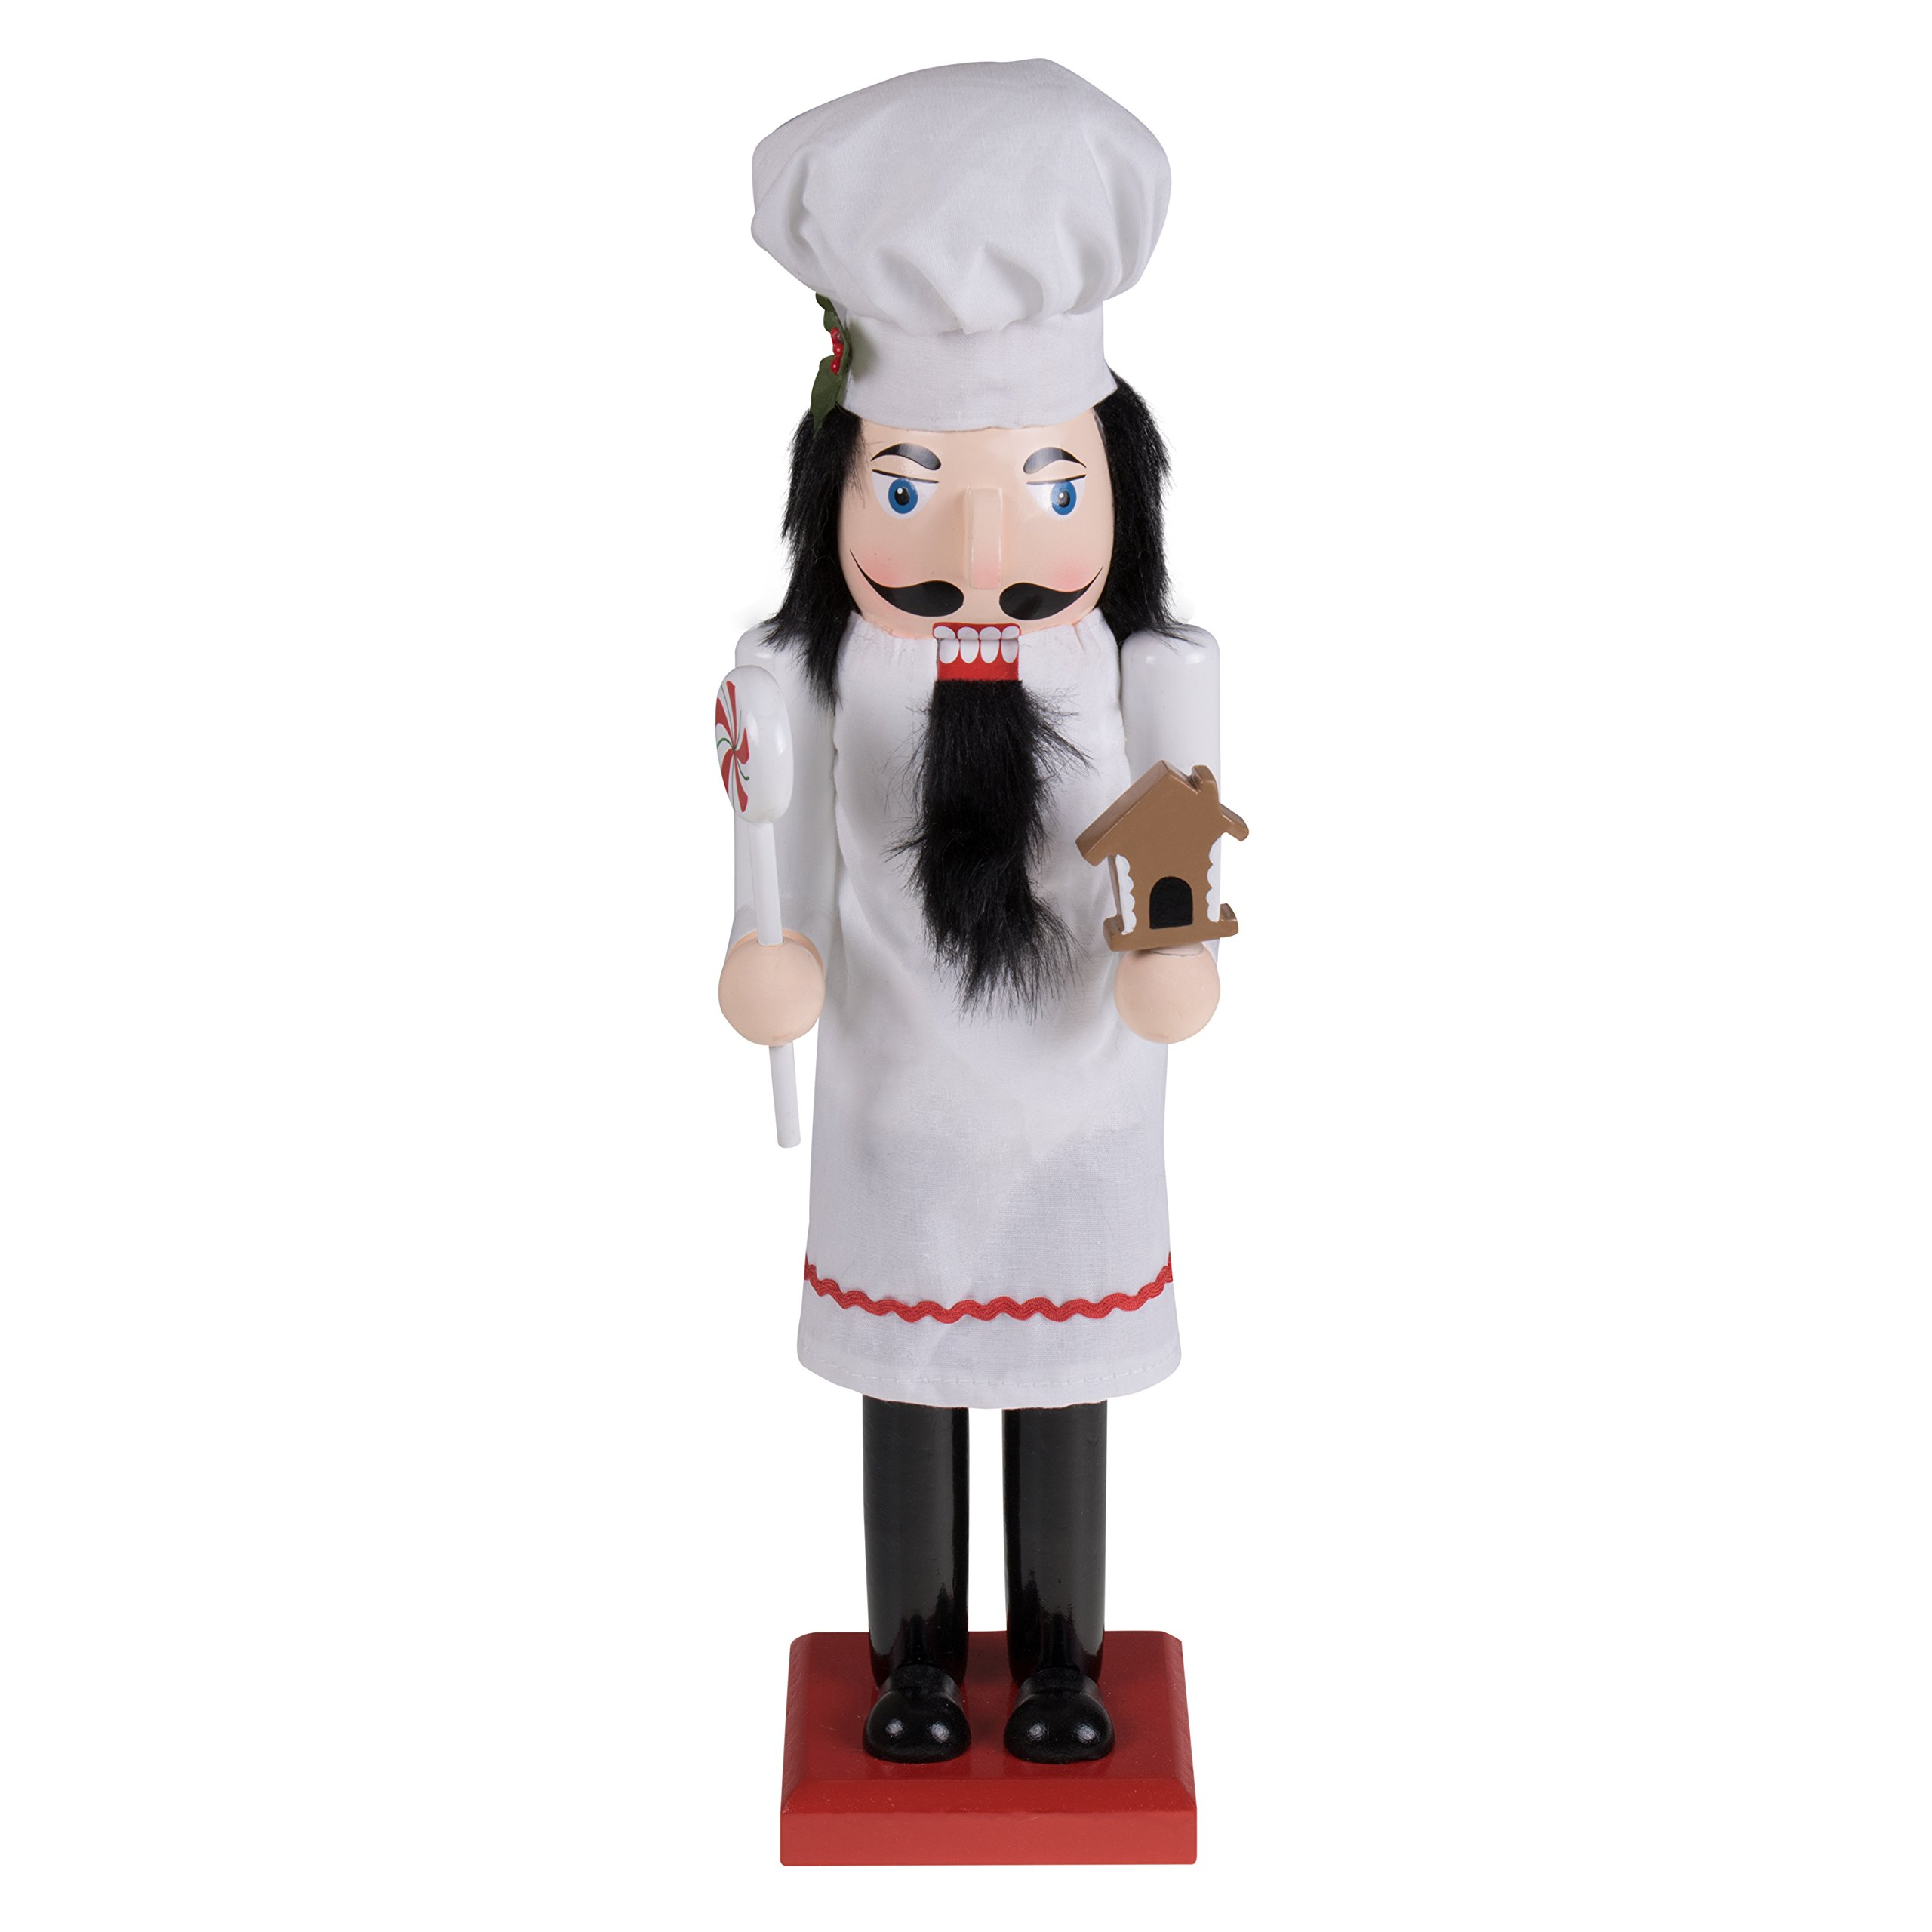 Baker Chef Nutcracker by Clever Creations | Baker Wearing White Apron with Red Trim and White Chefs Hat | Collectable Festive Christmas Decor | 100% Wood Perfect for Shelves and Tables | 15'' Tall by Clever Creations (Image #1)